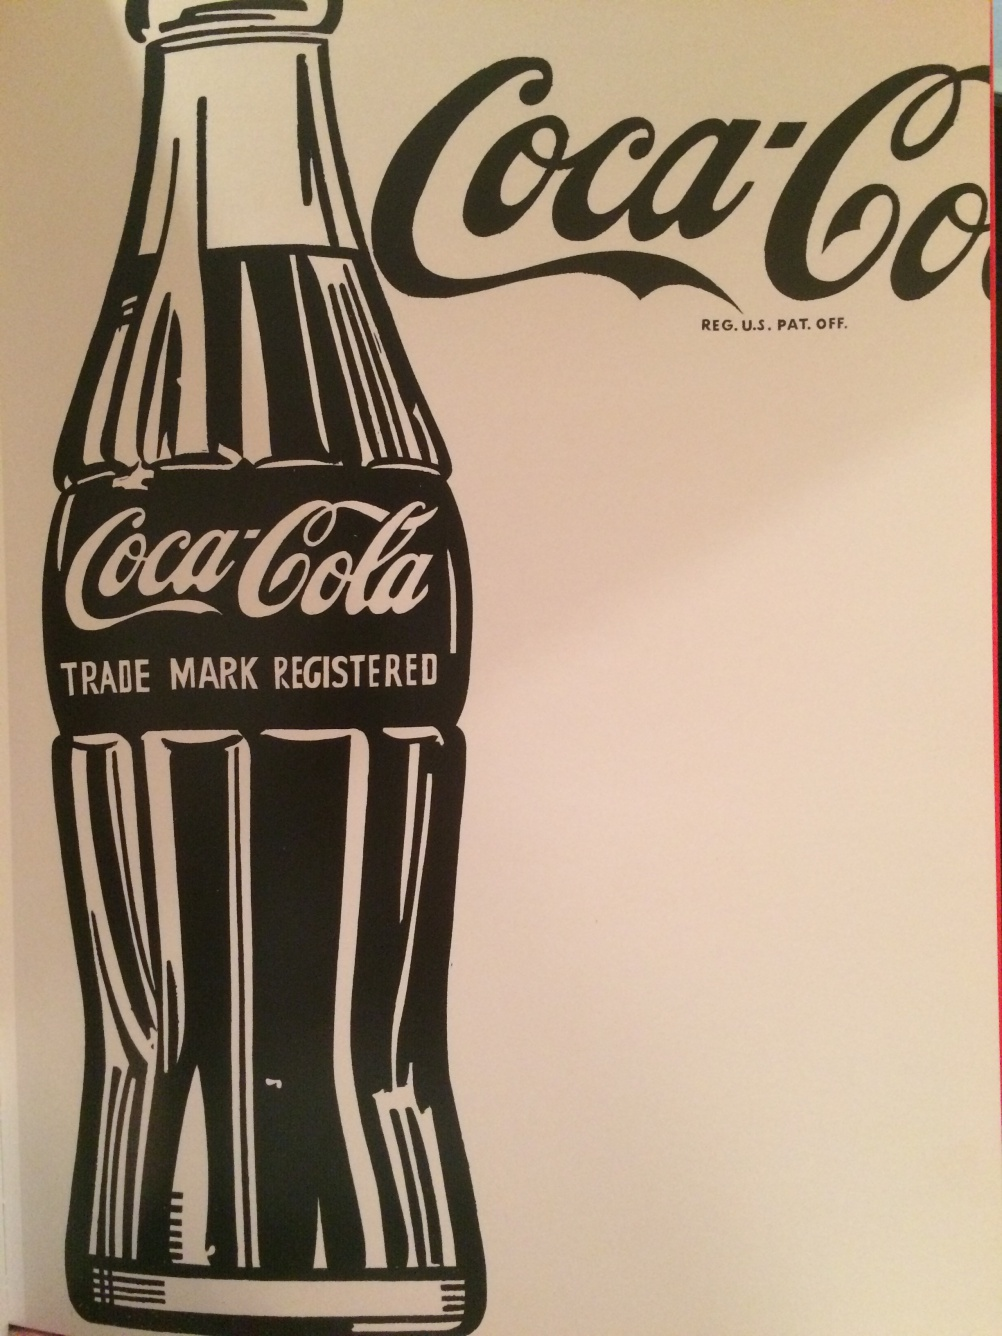 Coca-Cola print by Andy Warhol, 1962